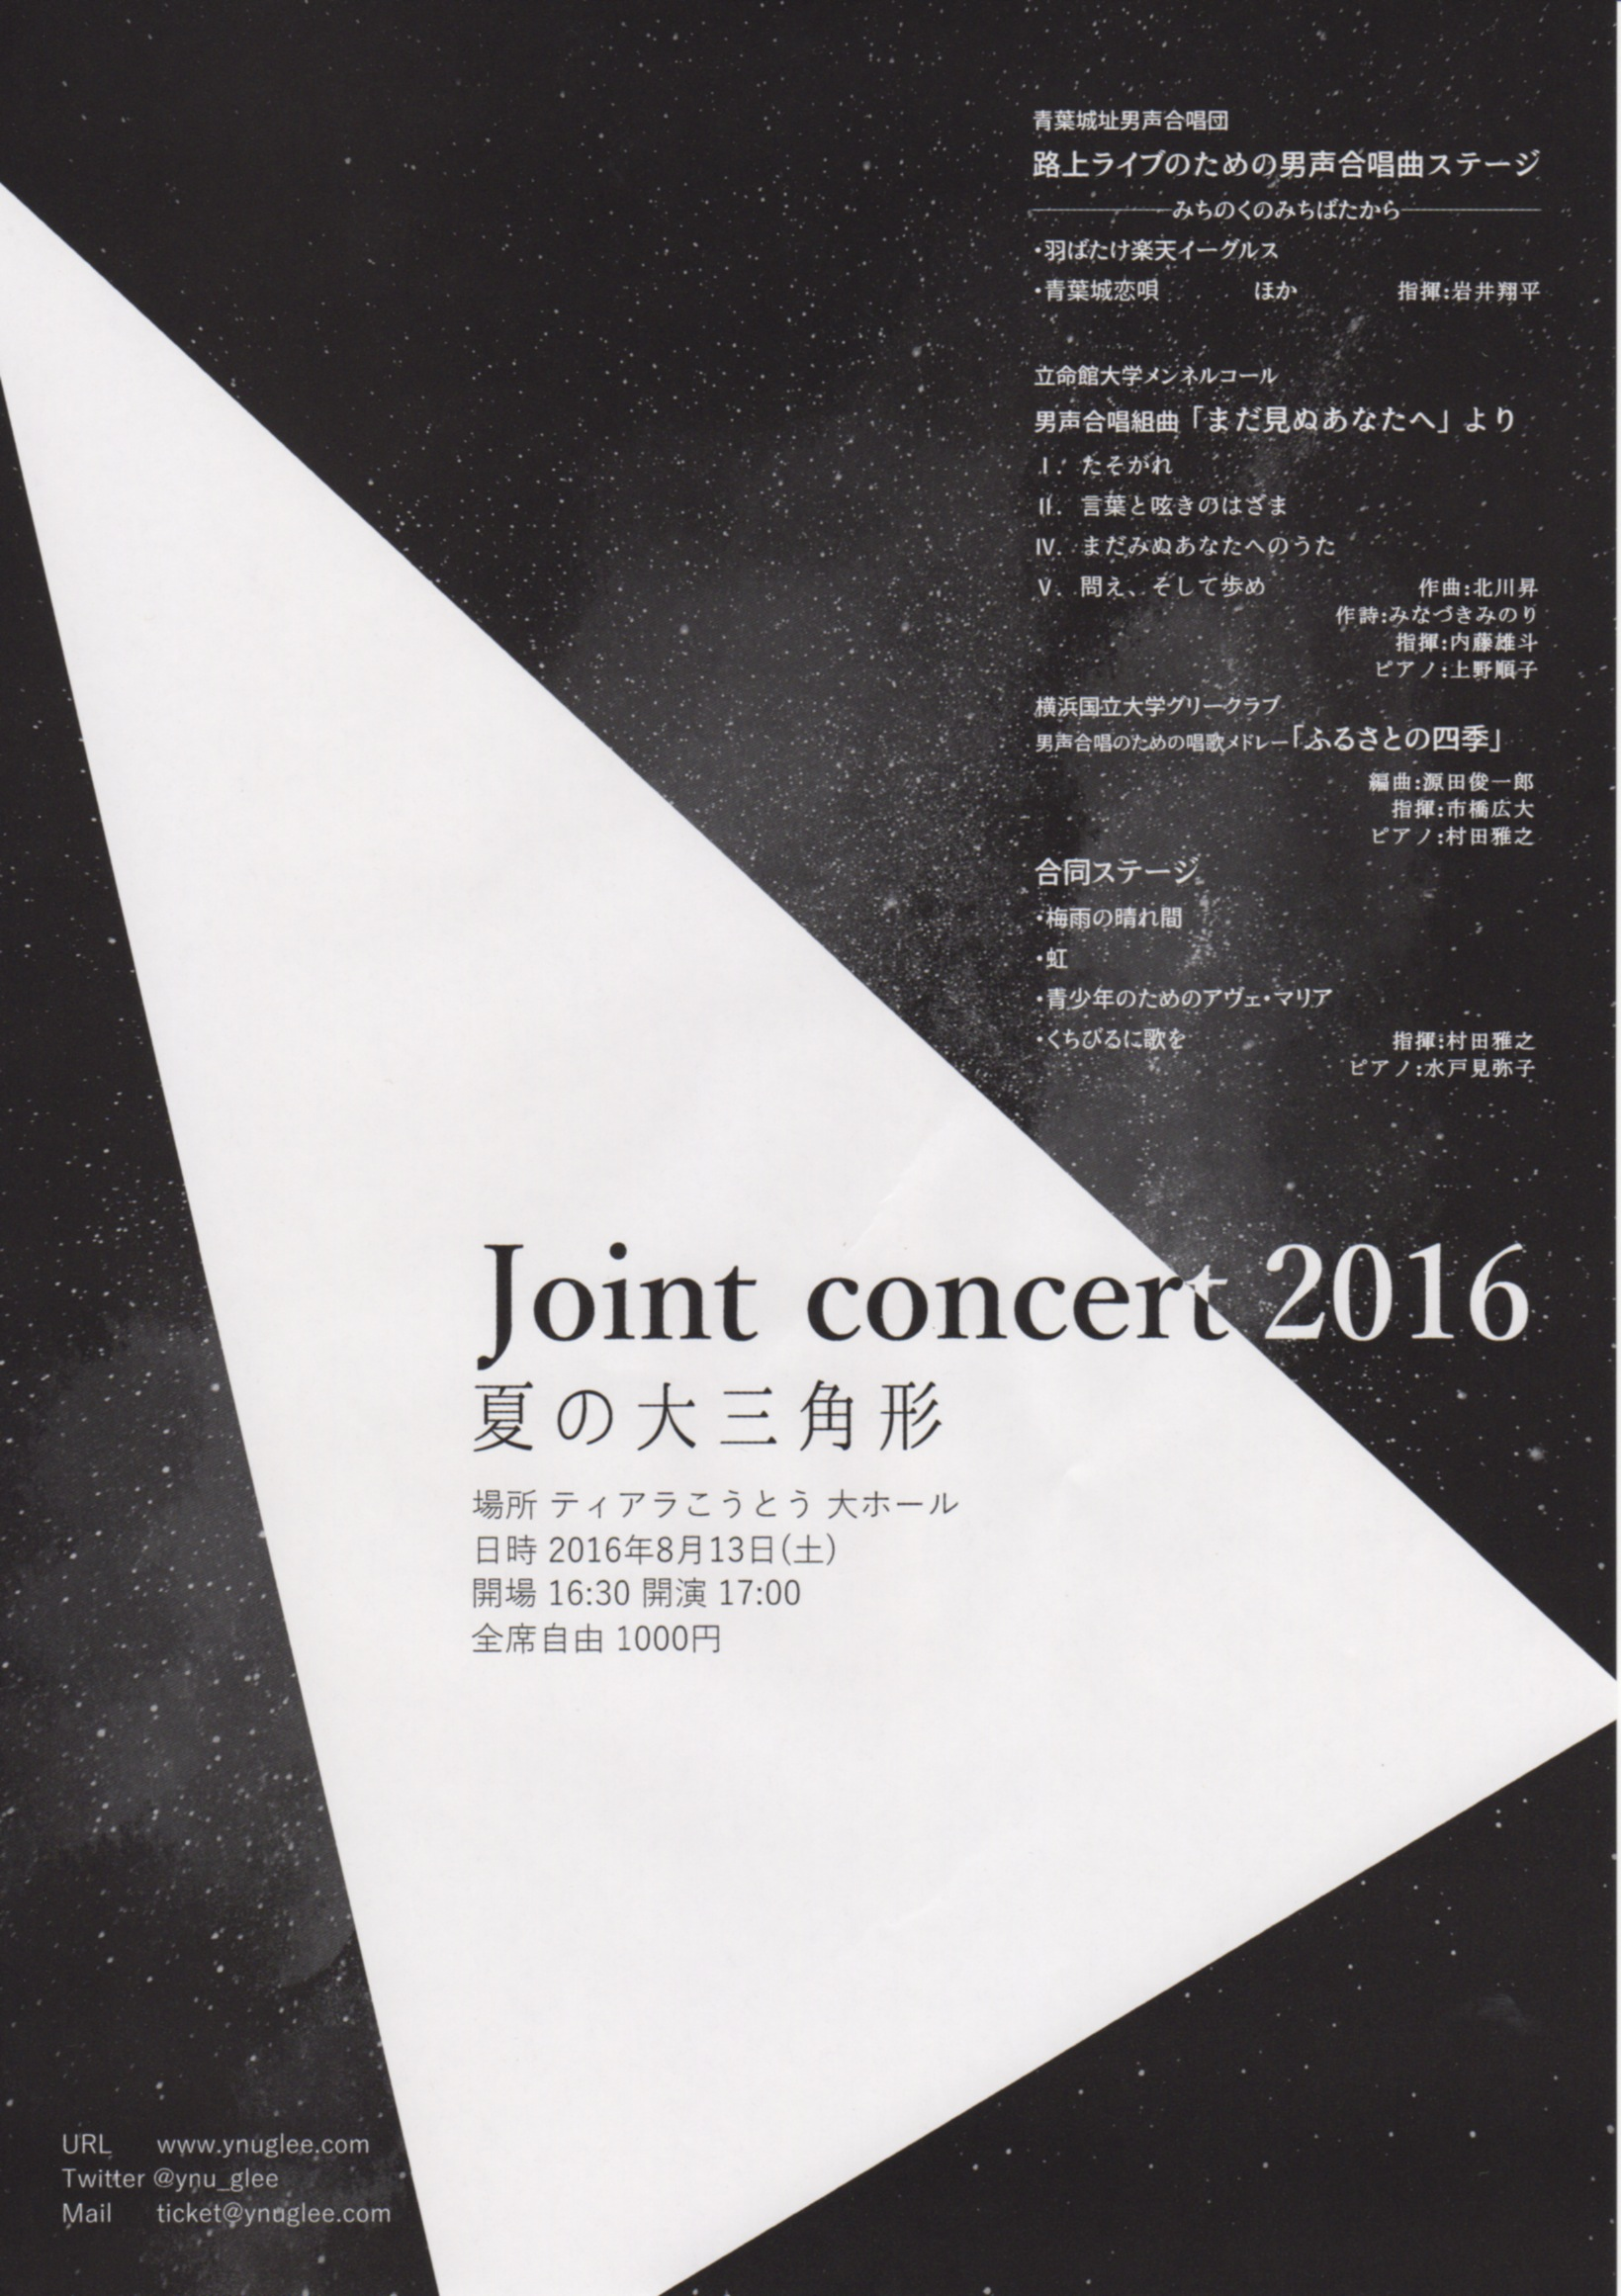 Joint concert 2016